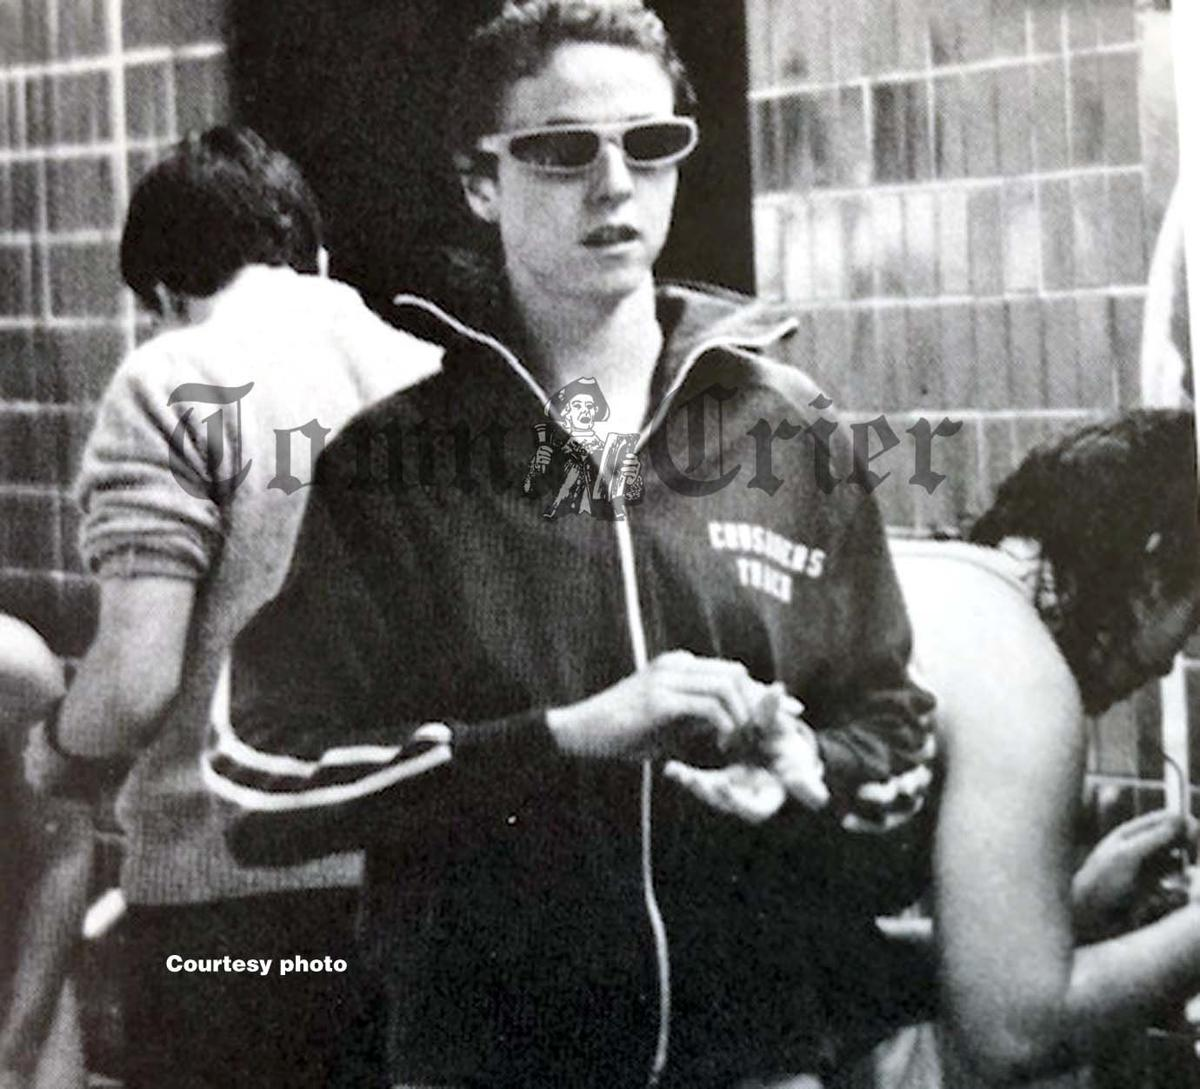 Mary McNaughton-Collins swam at Holy Cross